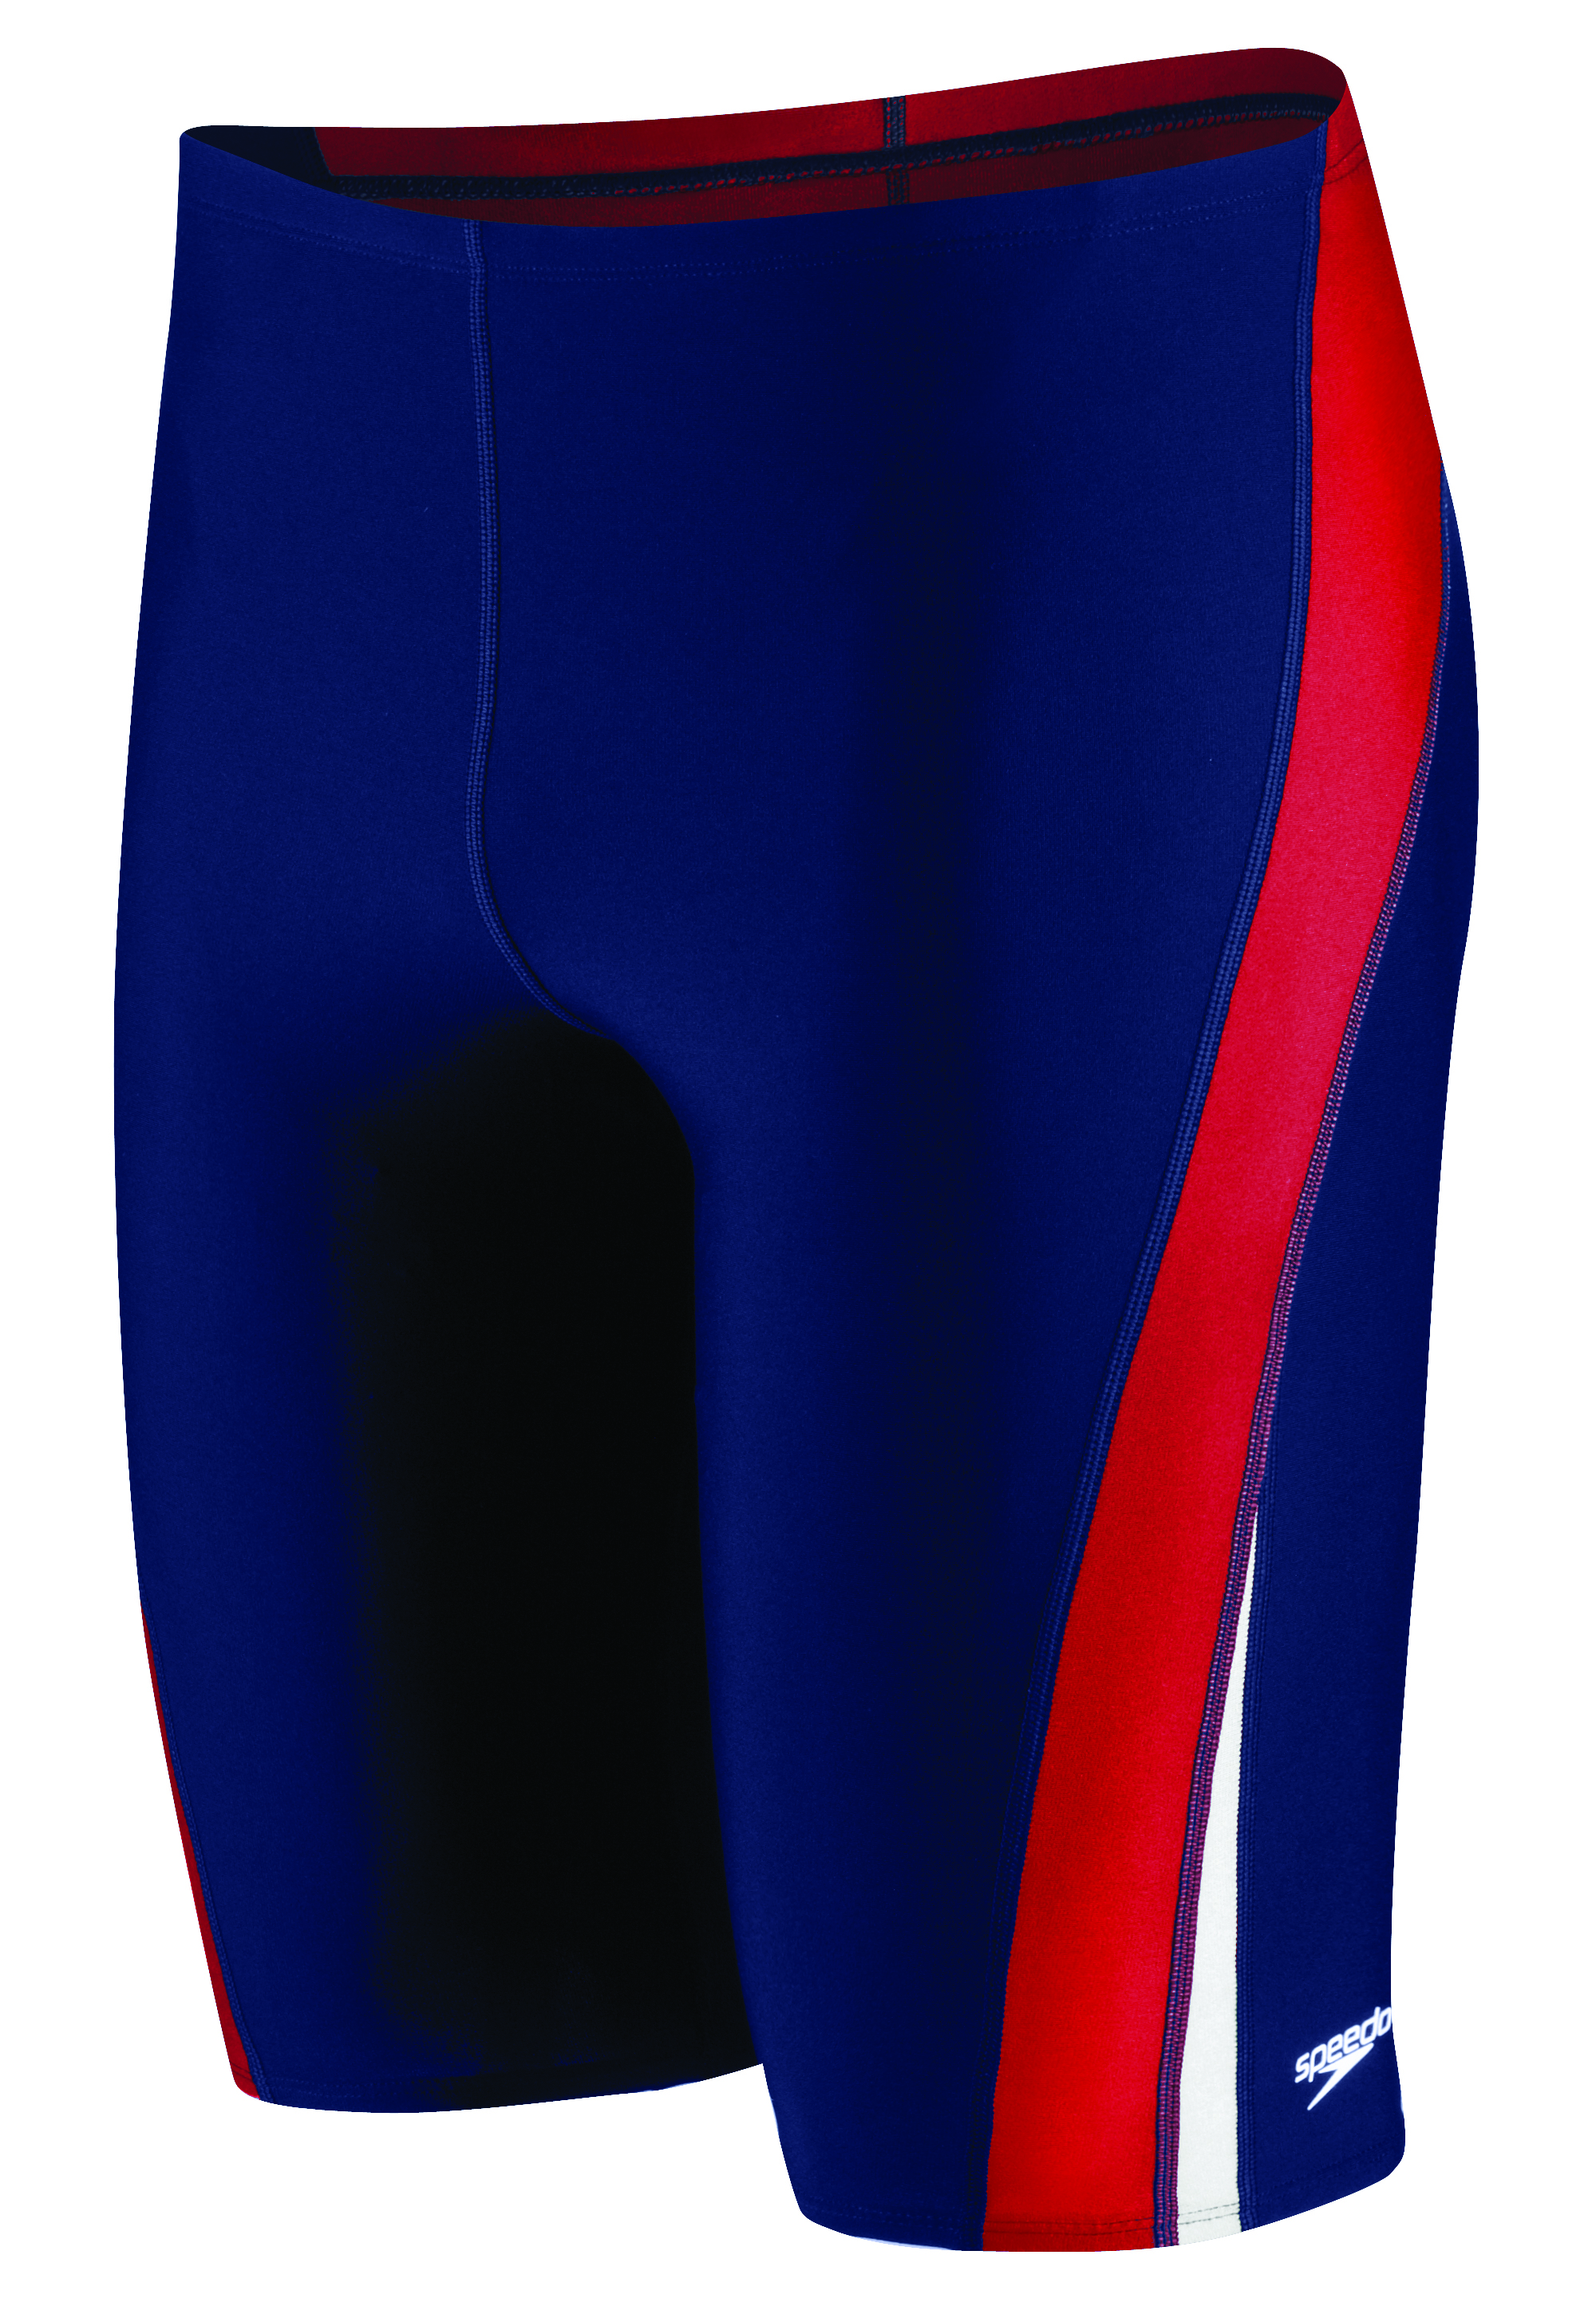 Speedo Endurance+ Launch Splice Jammer: Varsity Swim